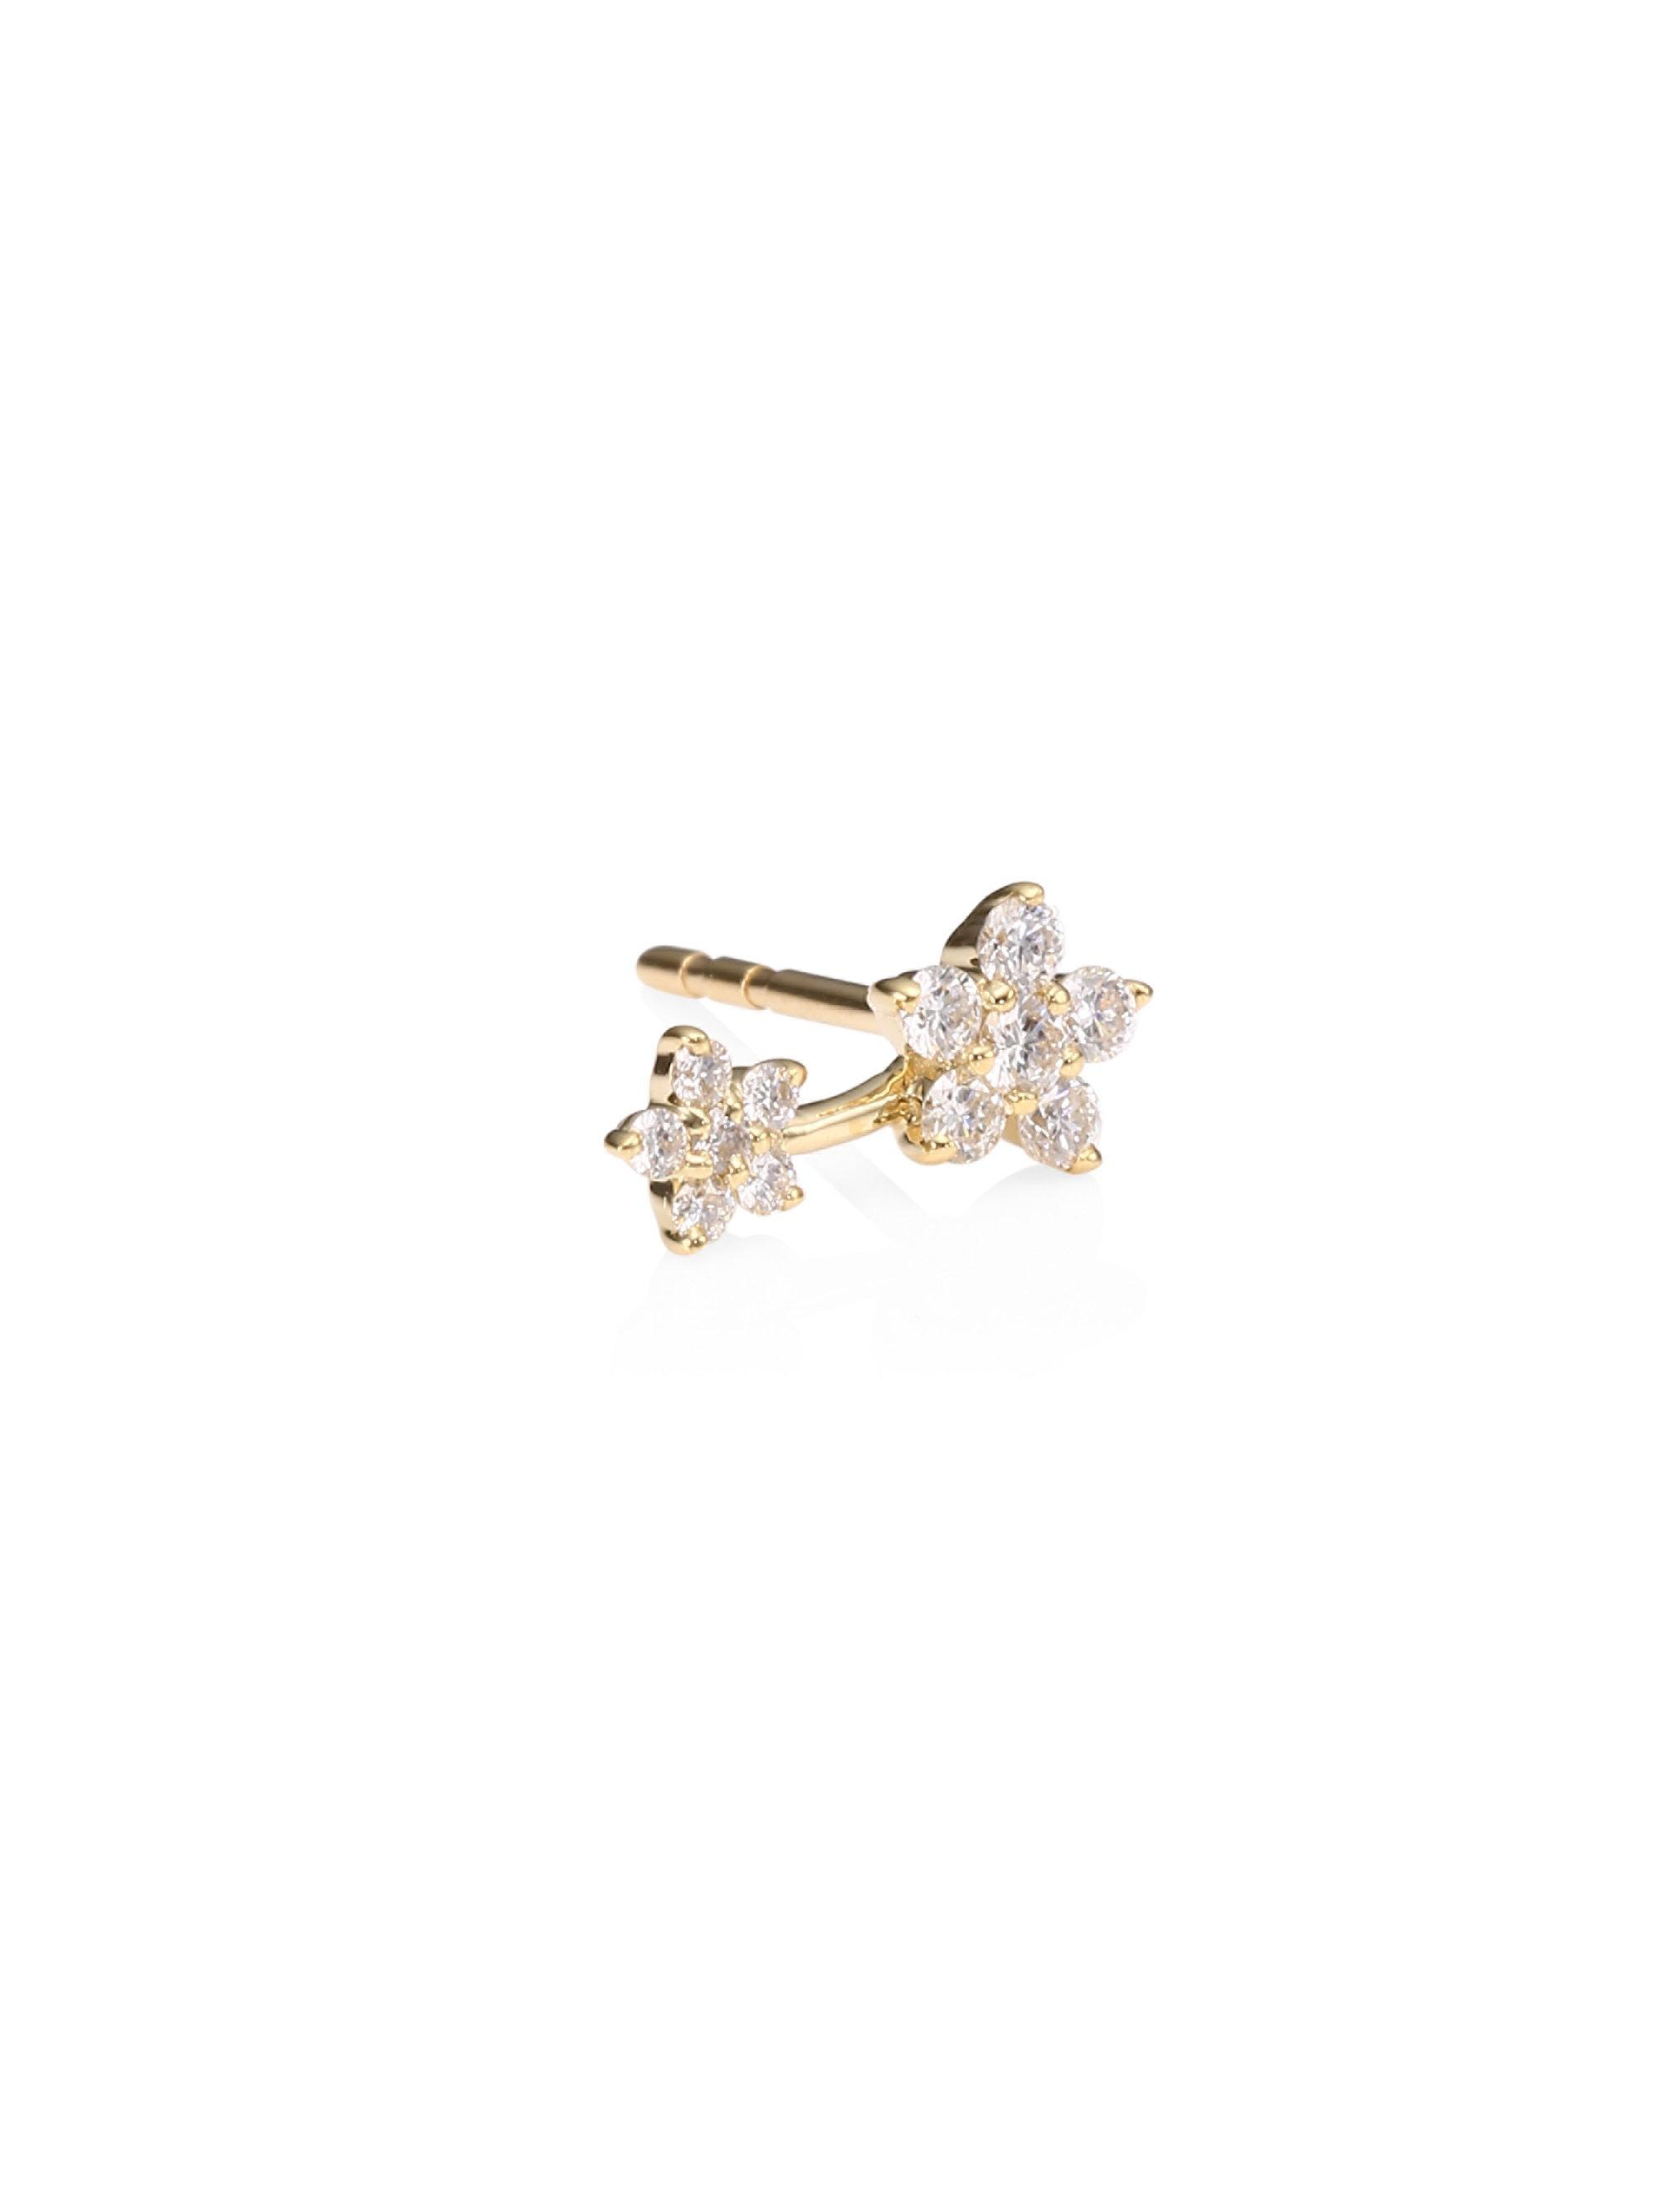 com online stud earrings john buynina nina gold diamond flower lewis white pdp johnlewis main b at big rsp